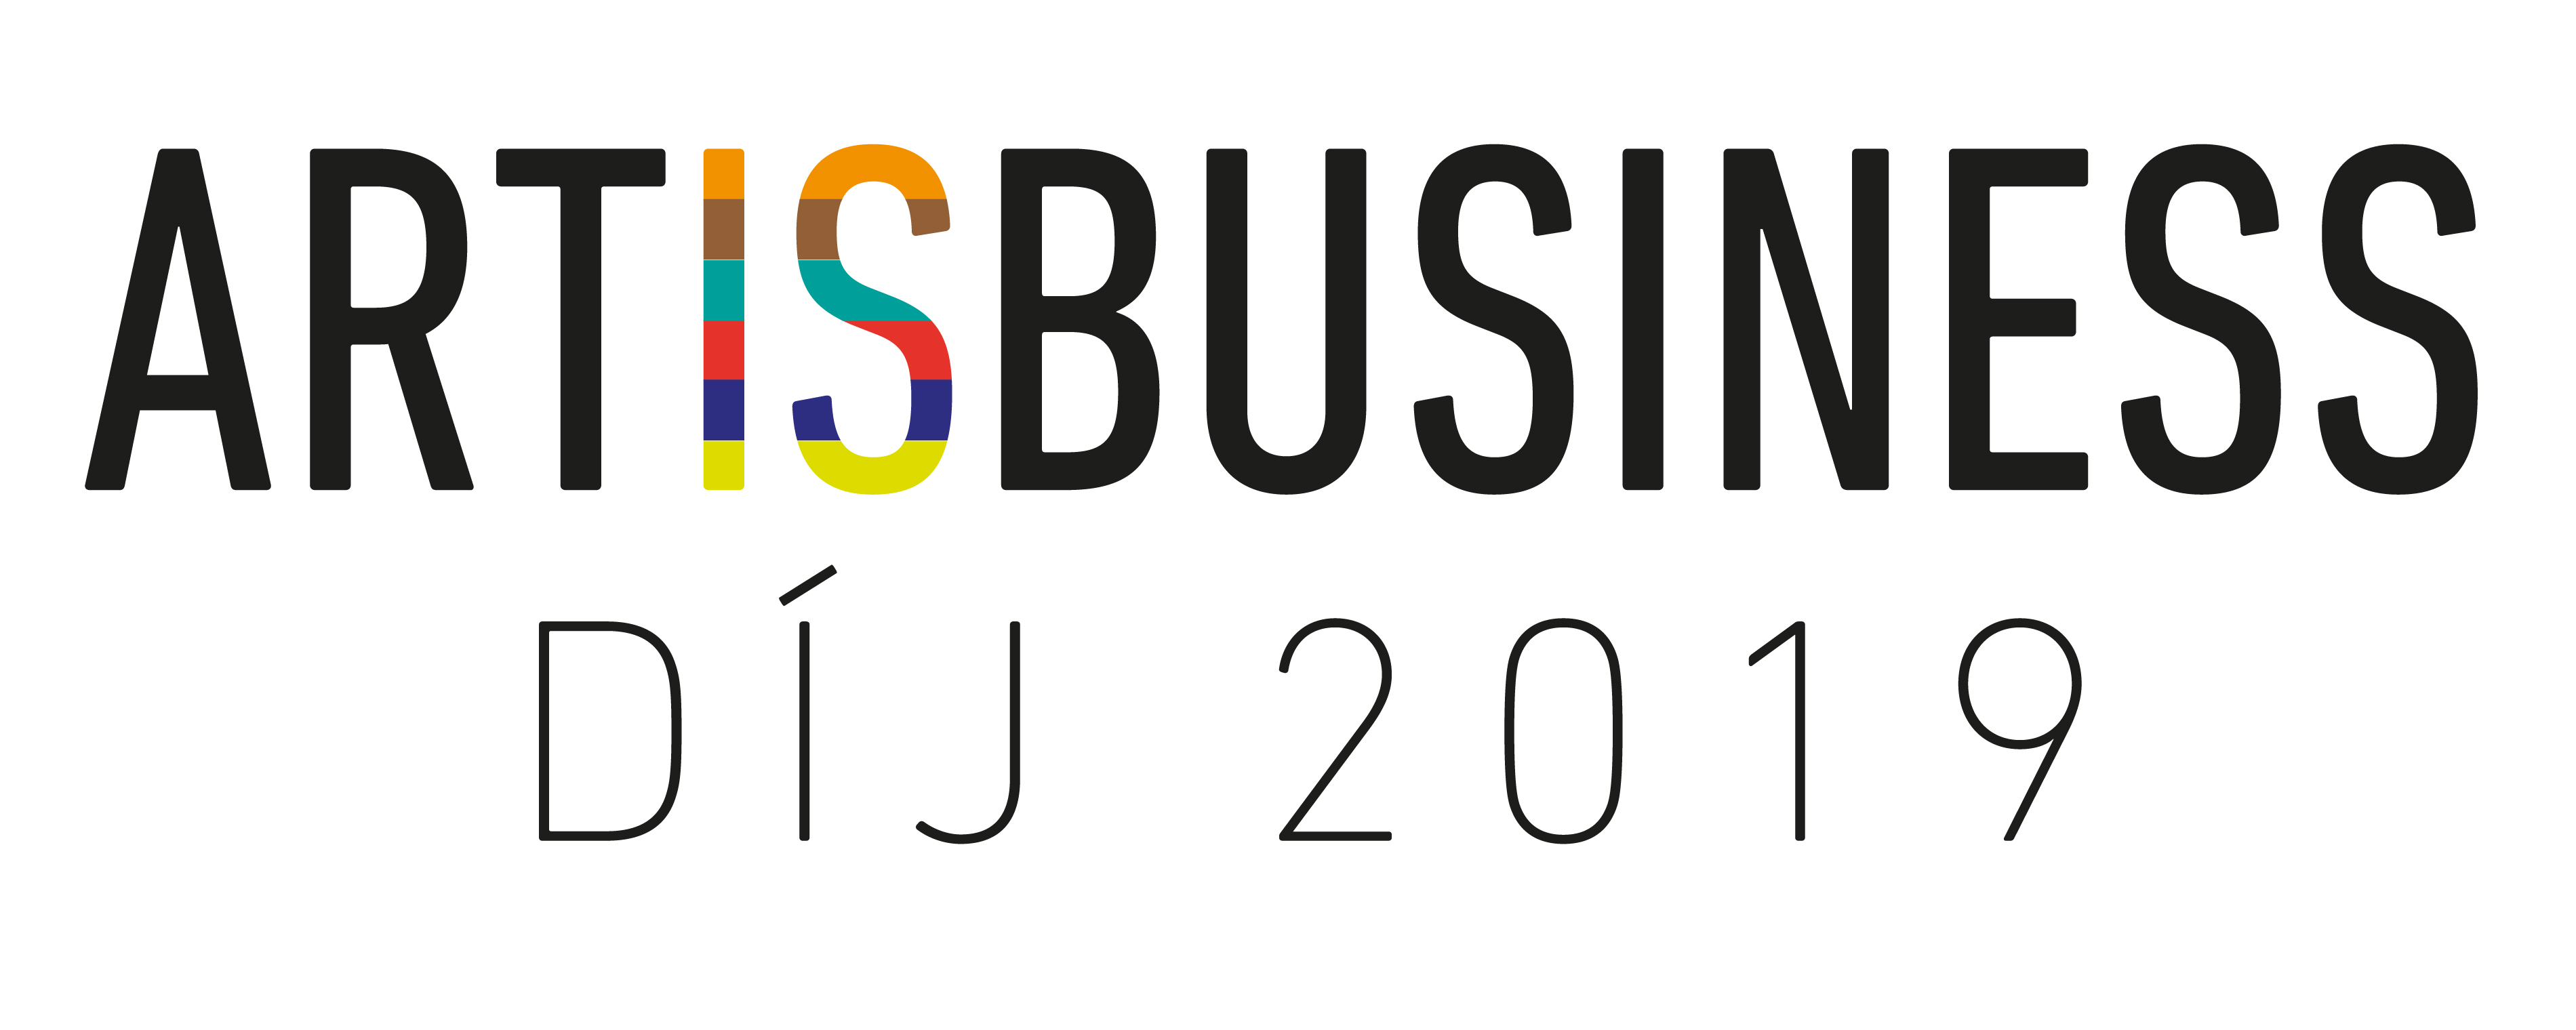 art-is-business_dij2019_logo.jpg